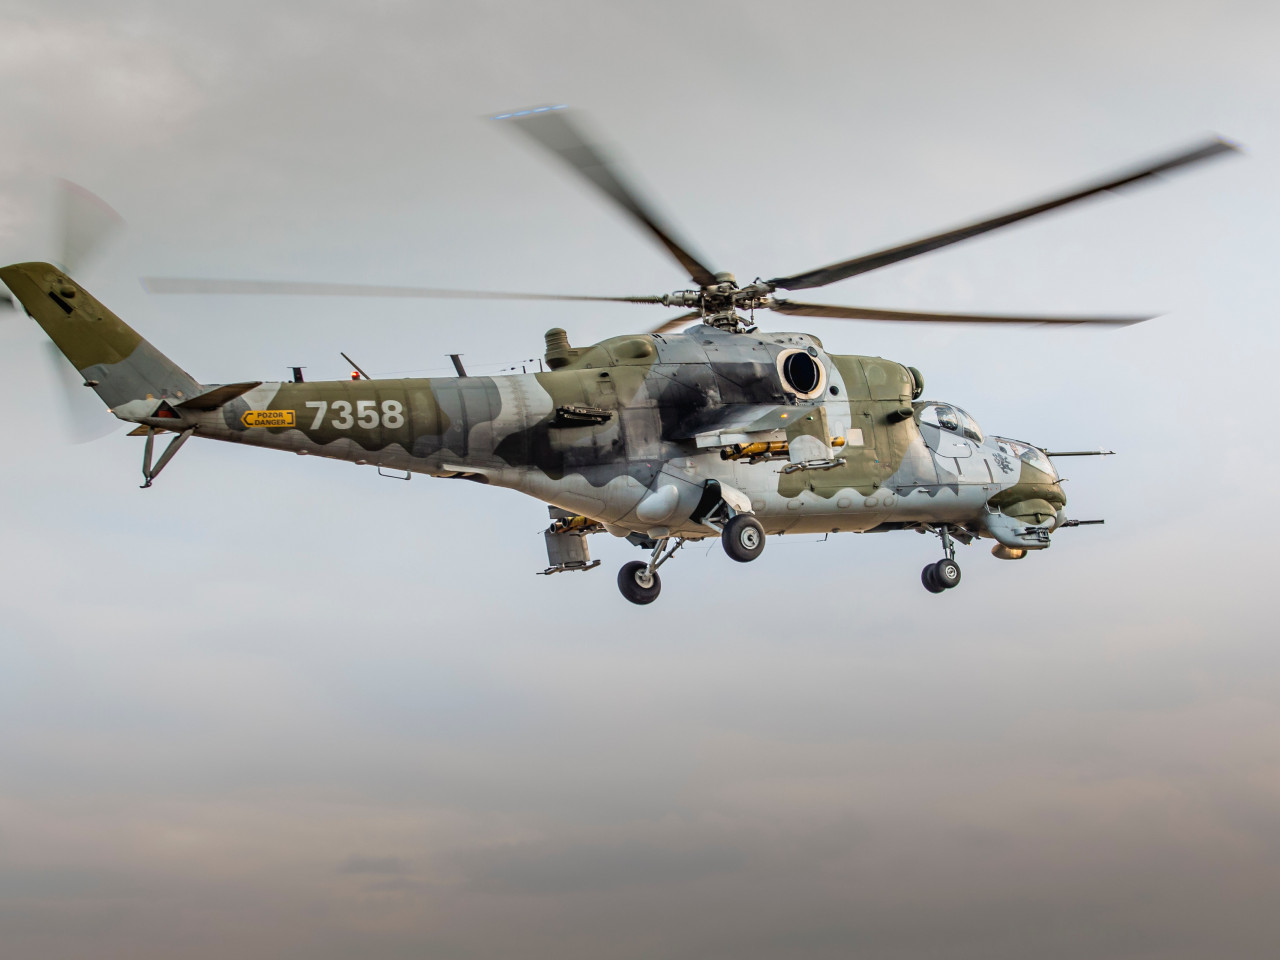 Military helicopter wallpaper 1280x960